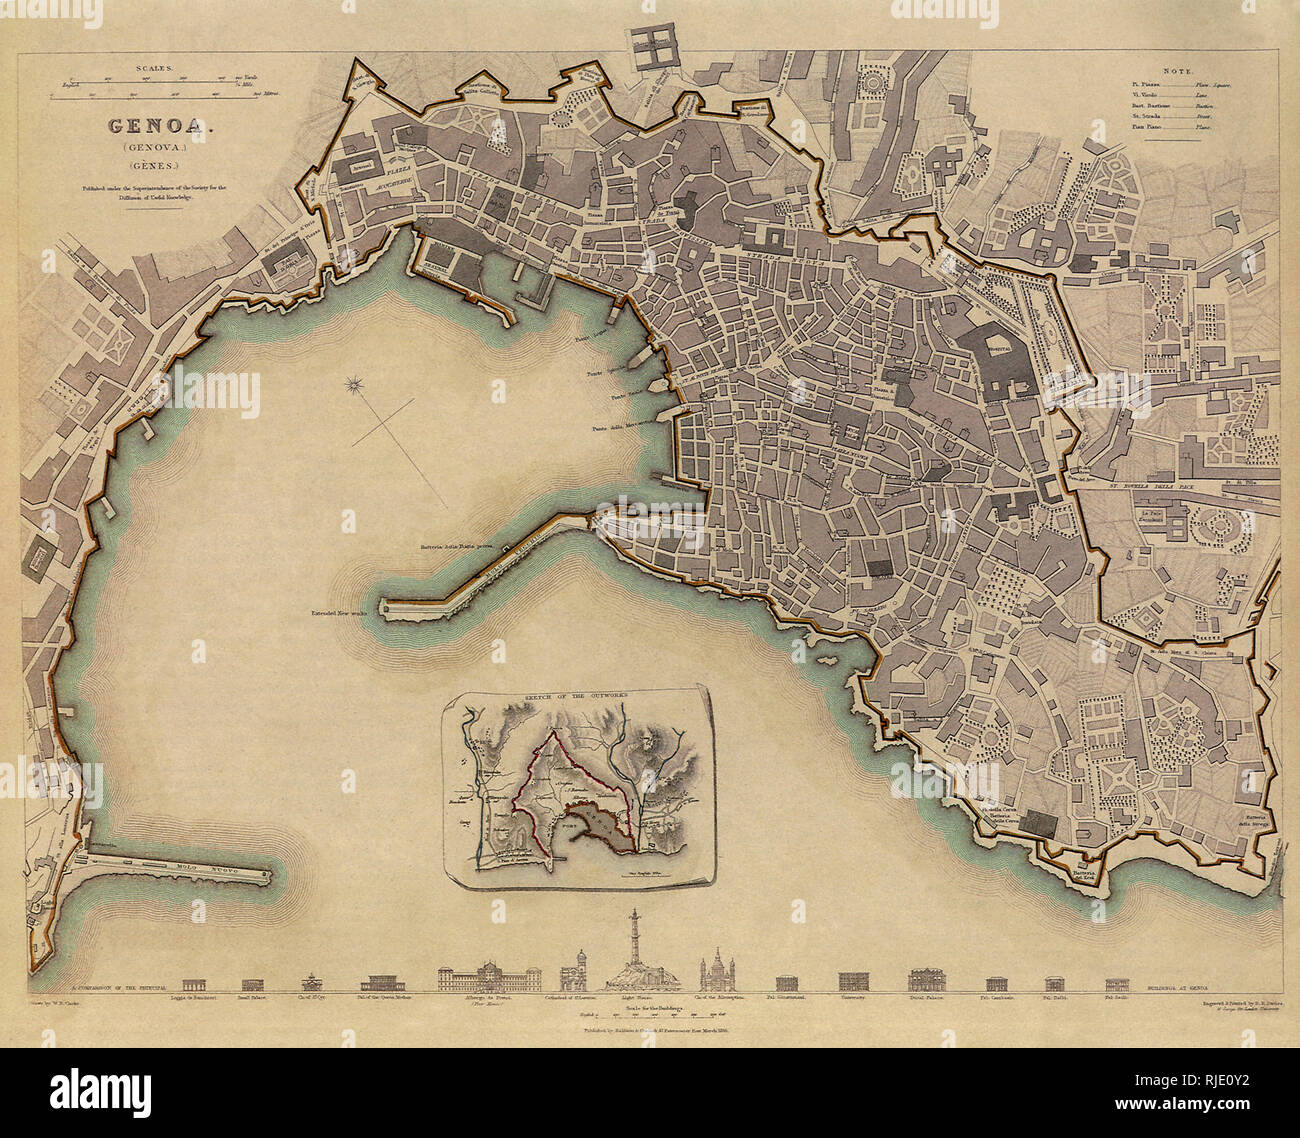 Map of Genoa, Italy Stock Photo: 235106678 - Alamy Genoa Italy Map on genovia map, corsica map, riga latvia map, naples map, valladolid spain map, le havre france map, christopher columbus, munich germany map, copenhagen denmark map, geneva map, capital of serbia map, genoa flag, amsterdam netherlands map, vienna map, paris france map, nevada hydrologic unit code map, milan map, medieval florence map, marseille france map, stockholm sweden map, cinque terre, italy, acre map,